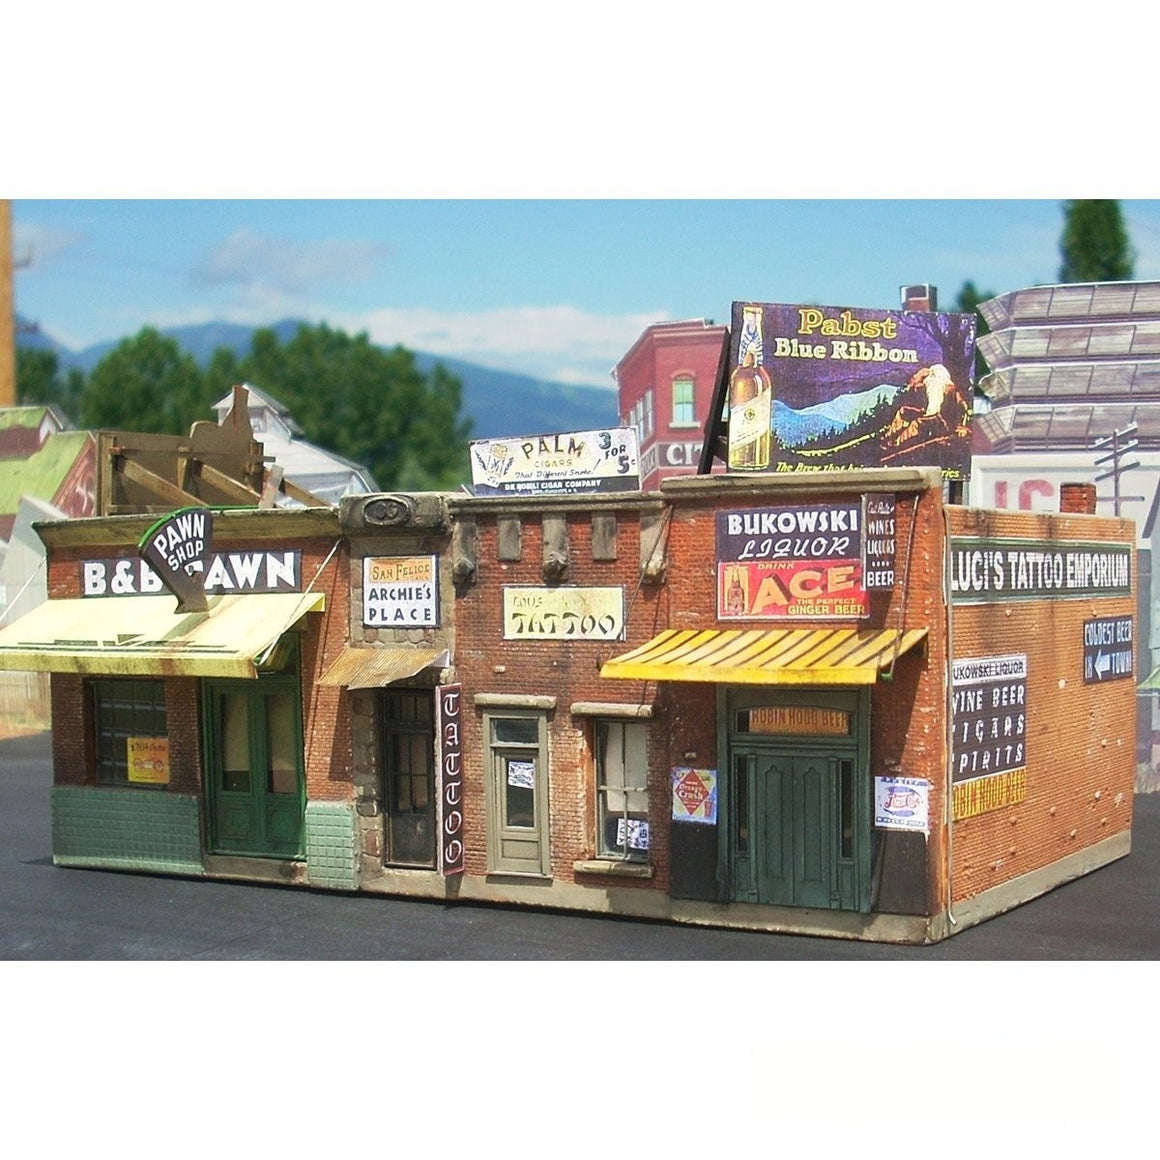 HO Scale: Addam's Ave. Part I